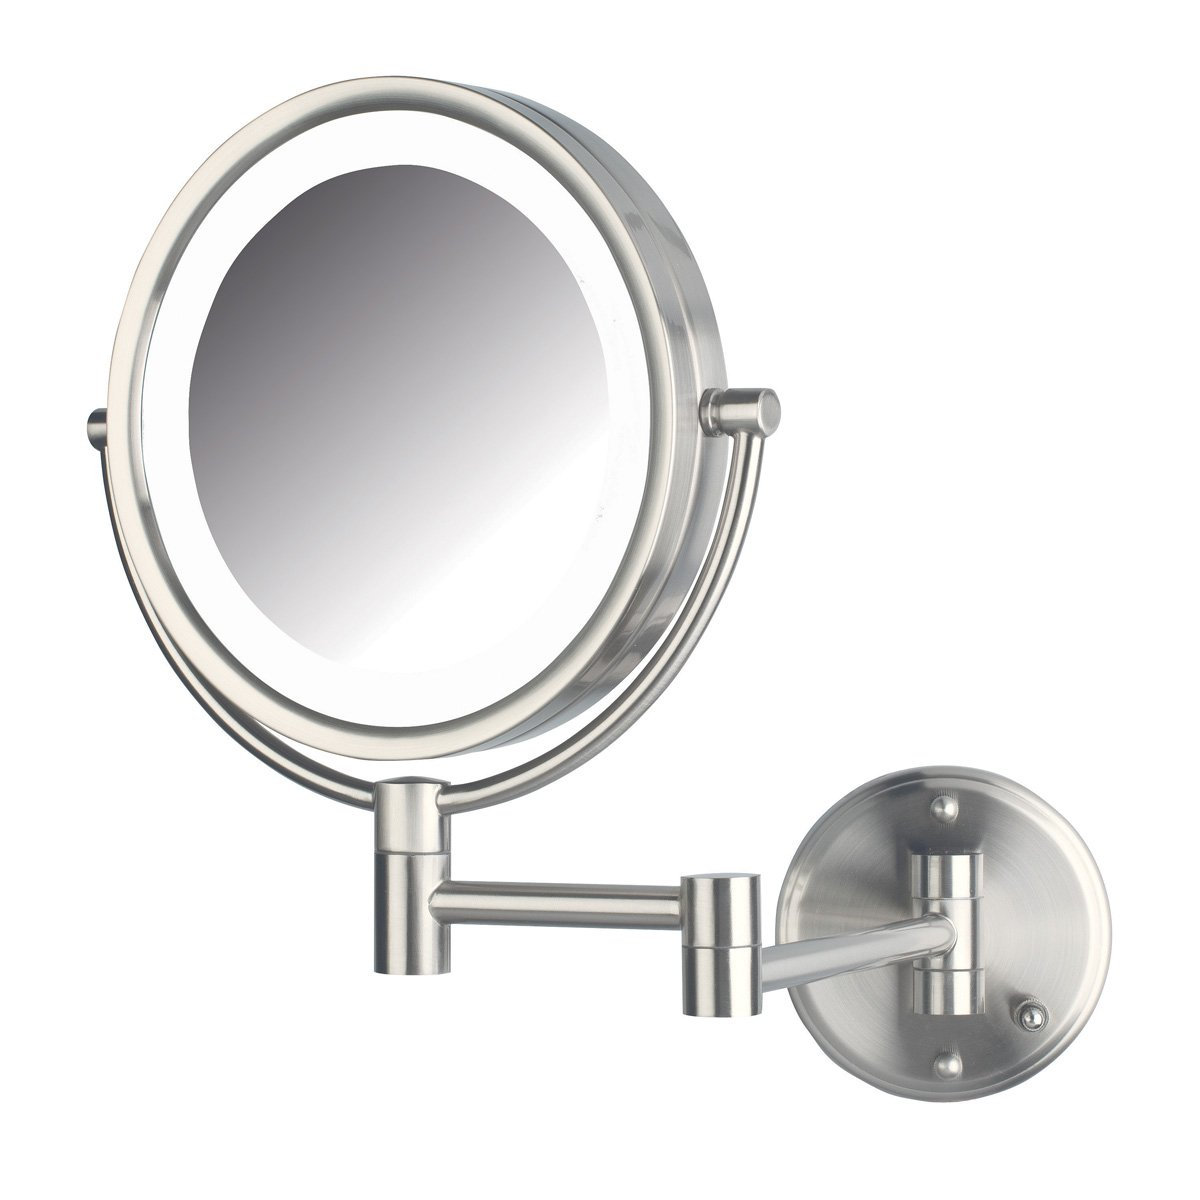 Jerdon HL88NLD 8.5 Led Lighted Direct Wire Makeup Mirror With 8x Magnification, Nickel Finish